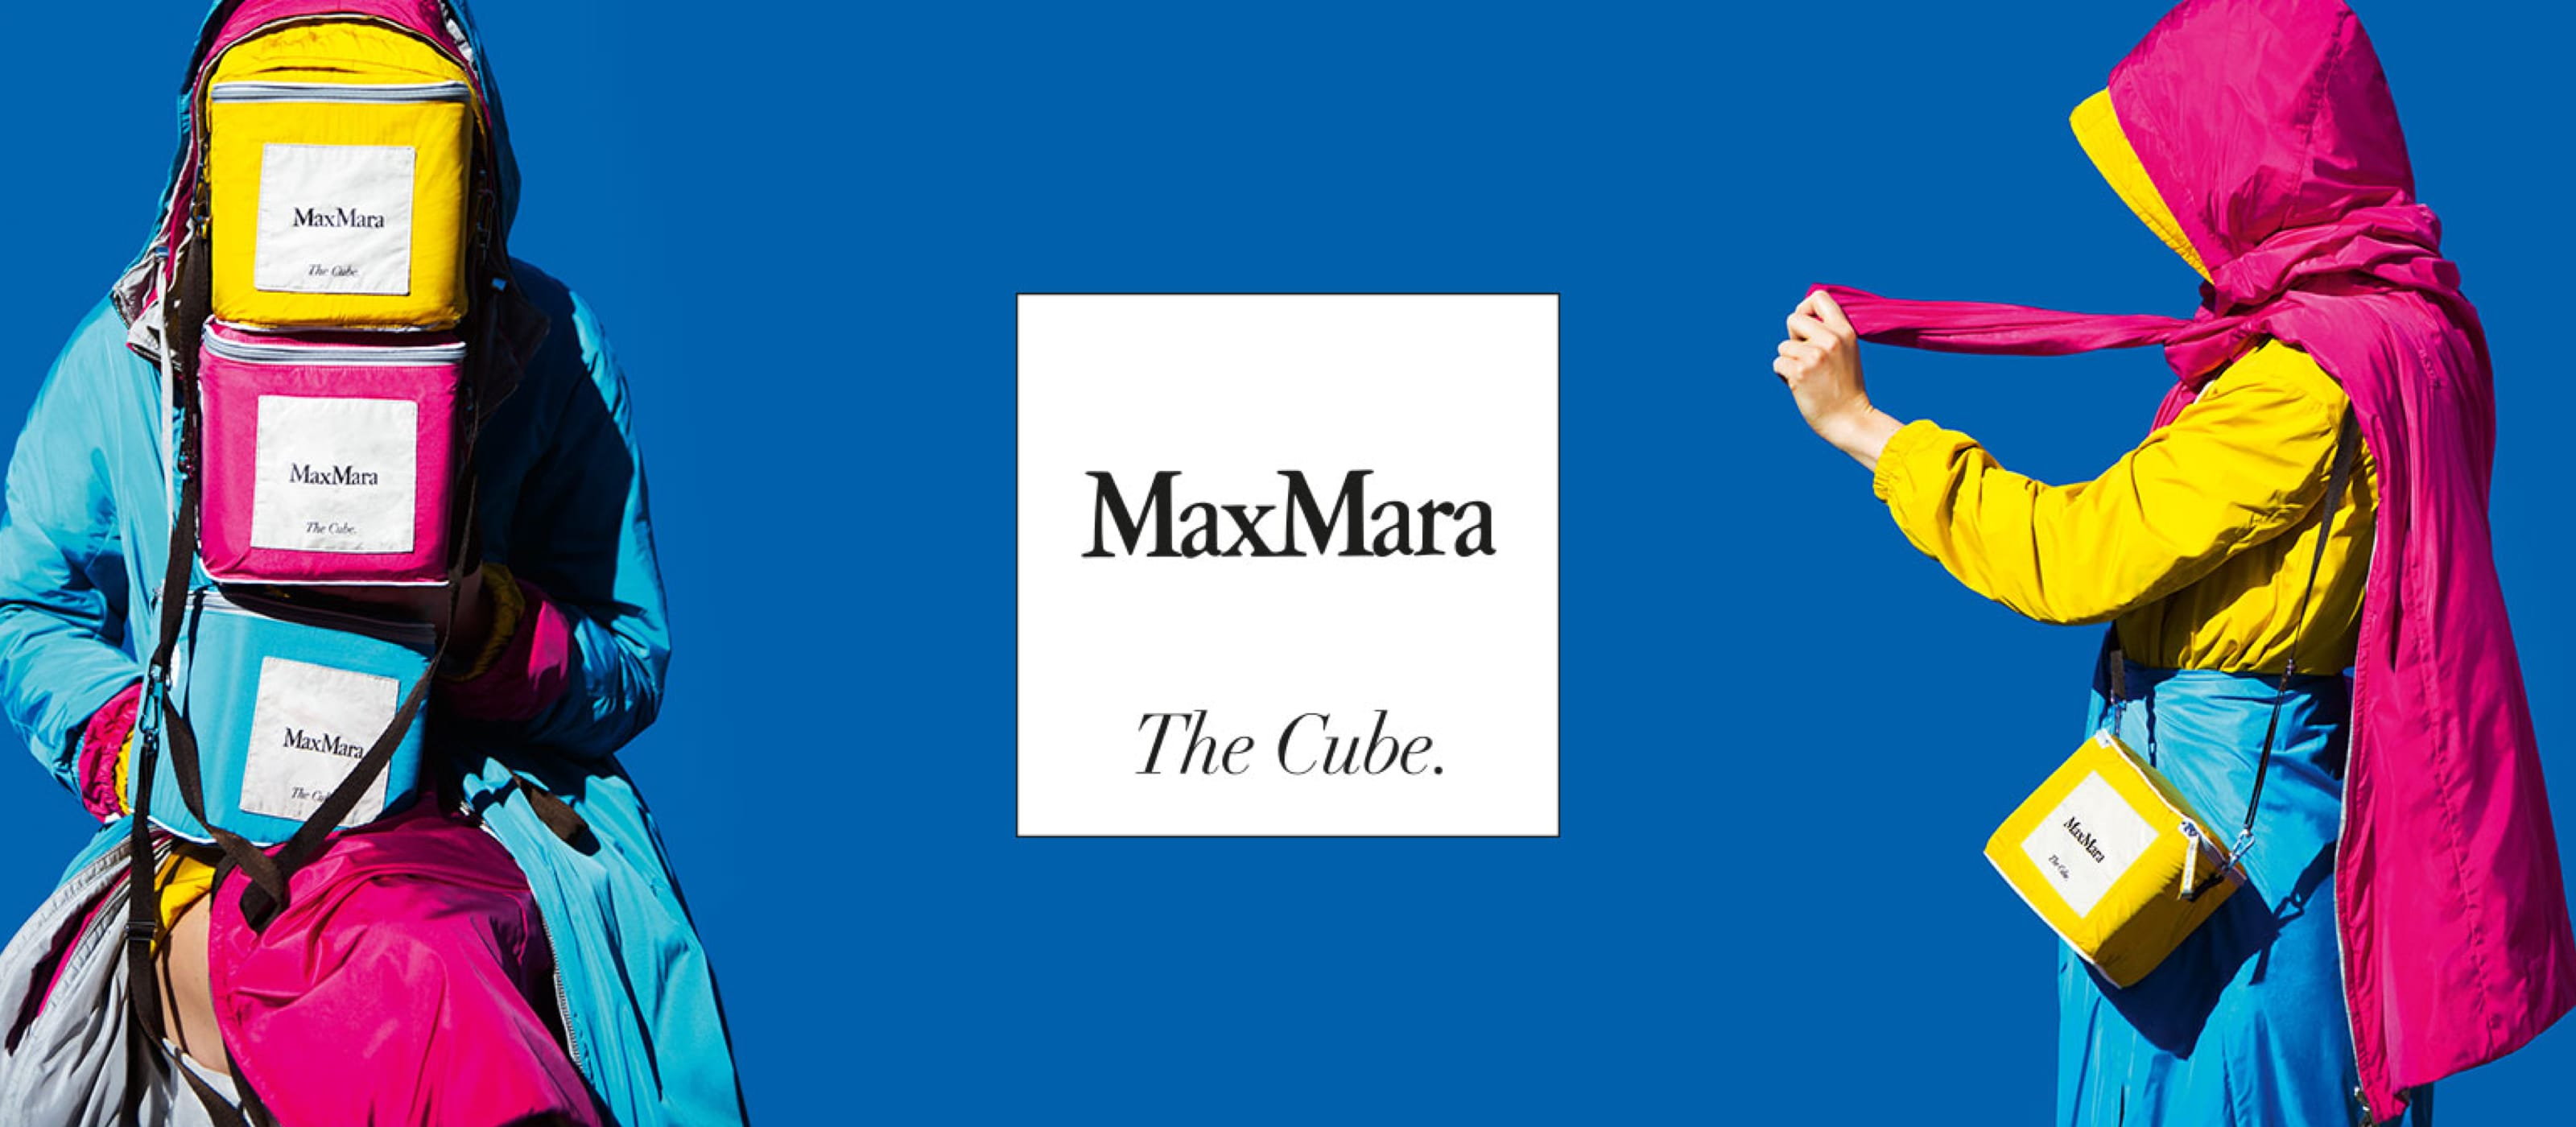 Super Hero 1600x700 Max Mara